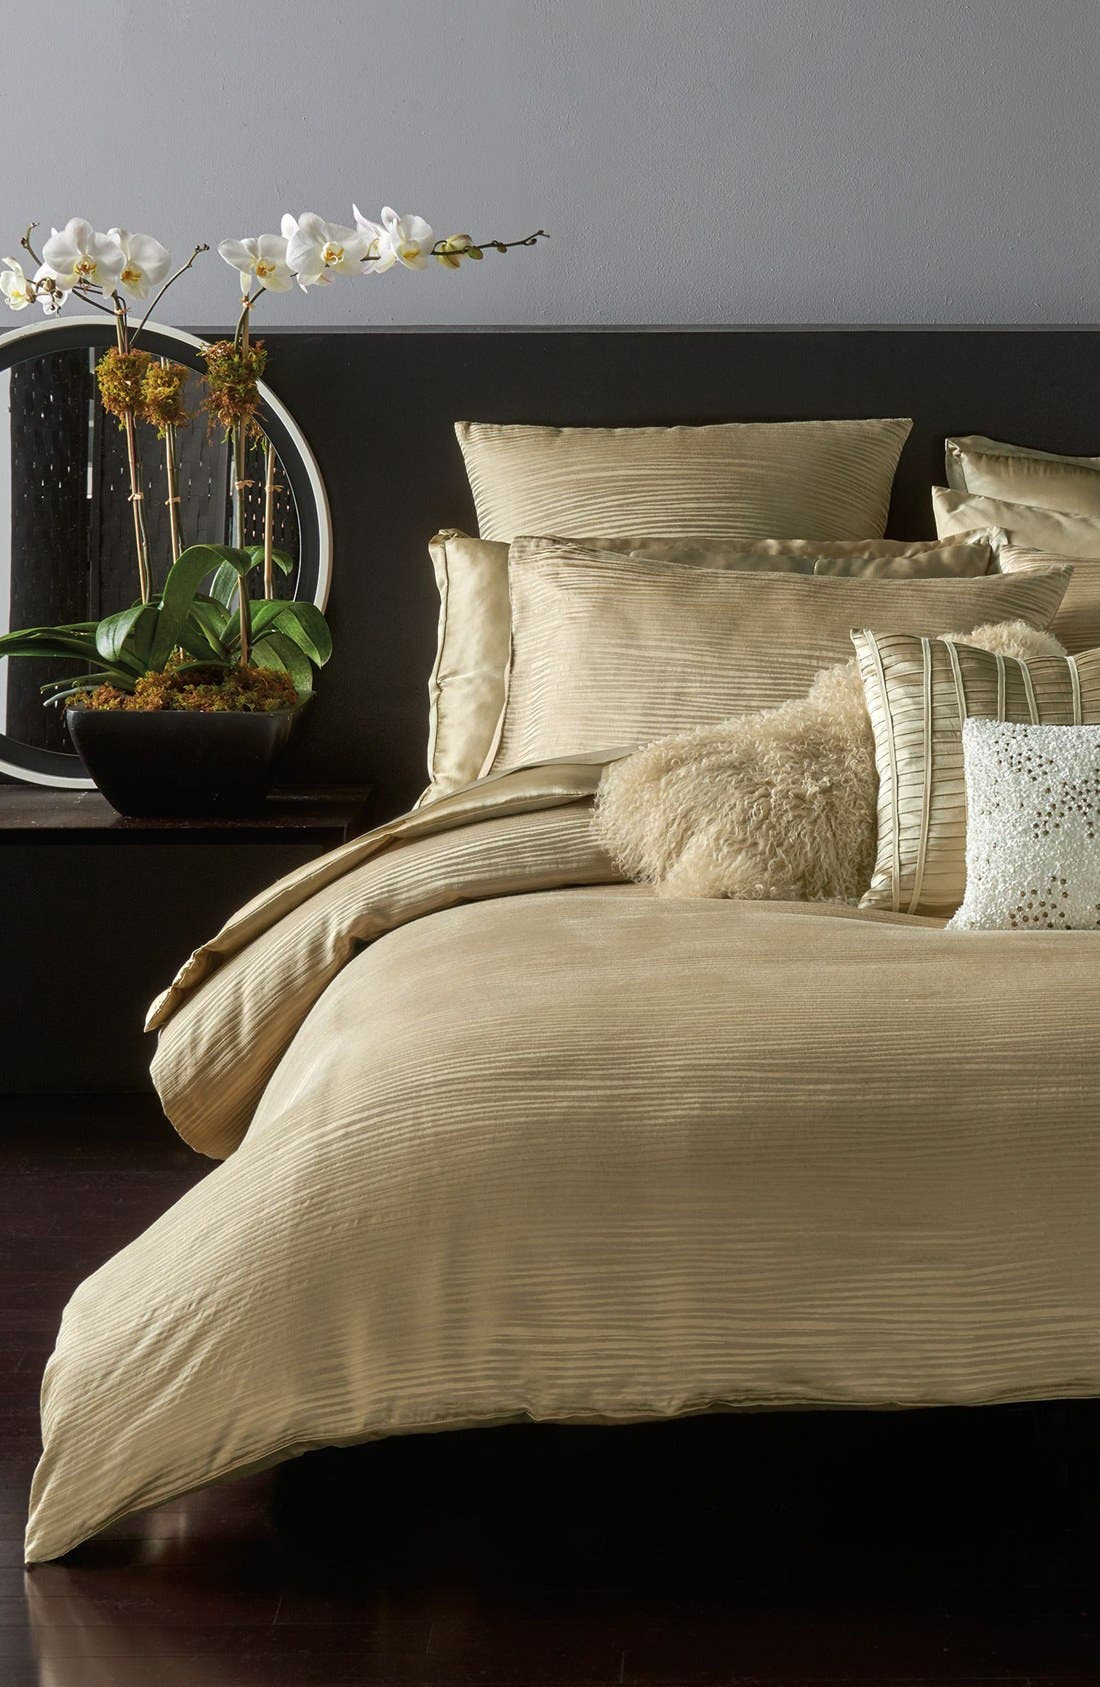 Donna Karan Collection 'Reflection' Bedding Collection (Online Only)